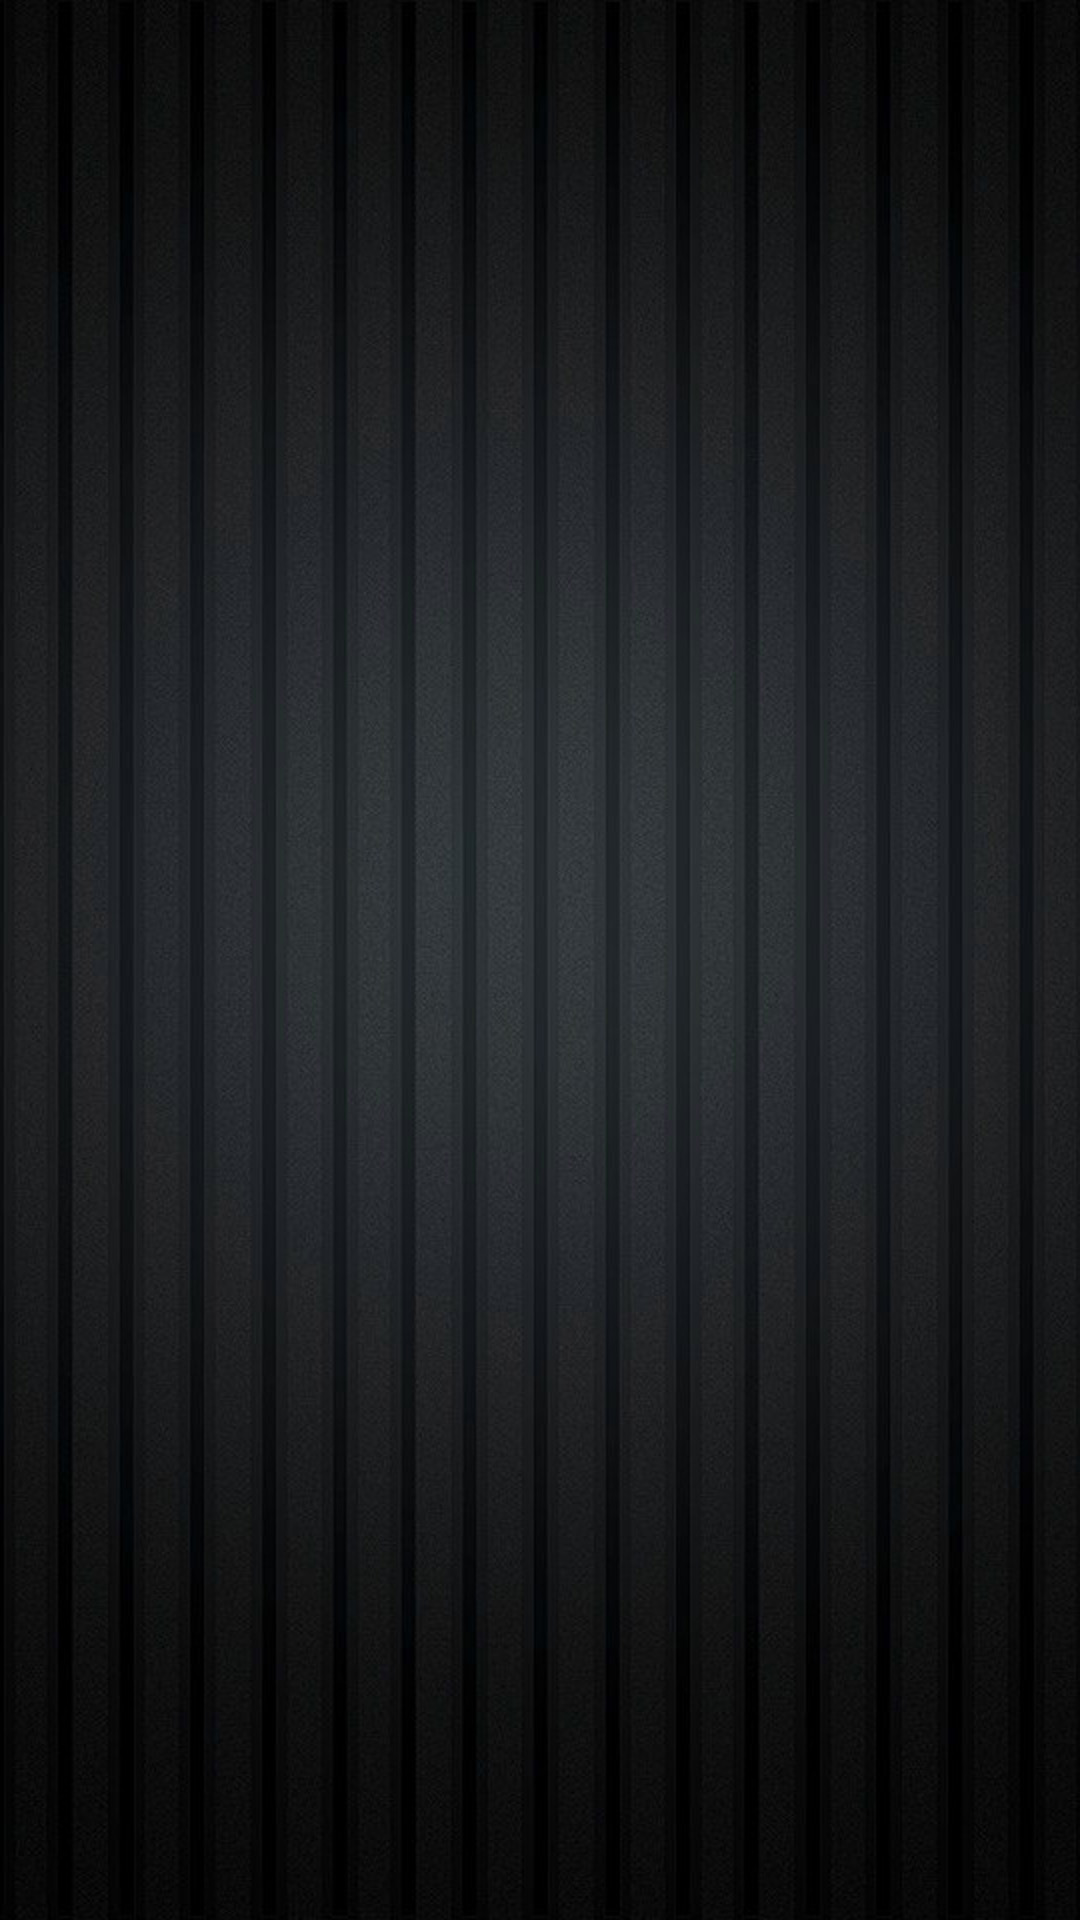 Wood dark background texture wallpaper background iphone 6 - Background Dark Stripes 1 Hd Wallpaper Iphone 6 Plus